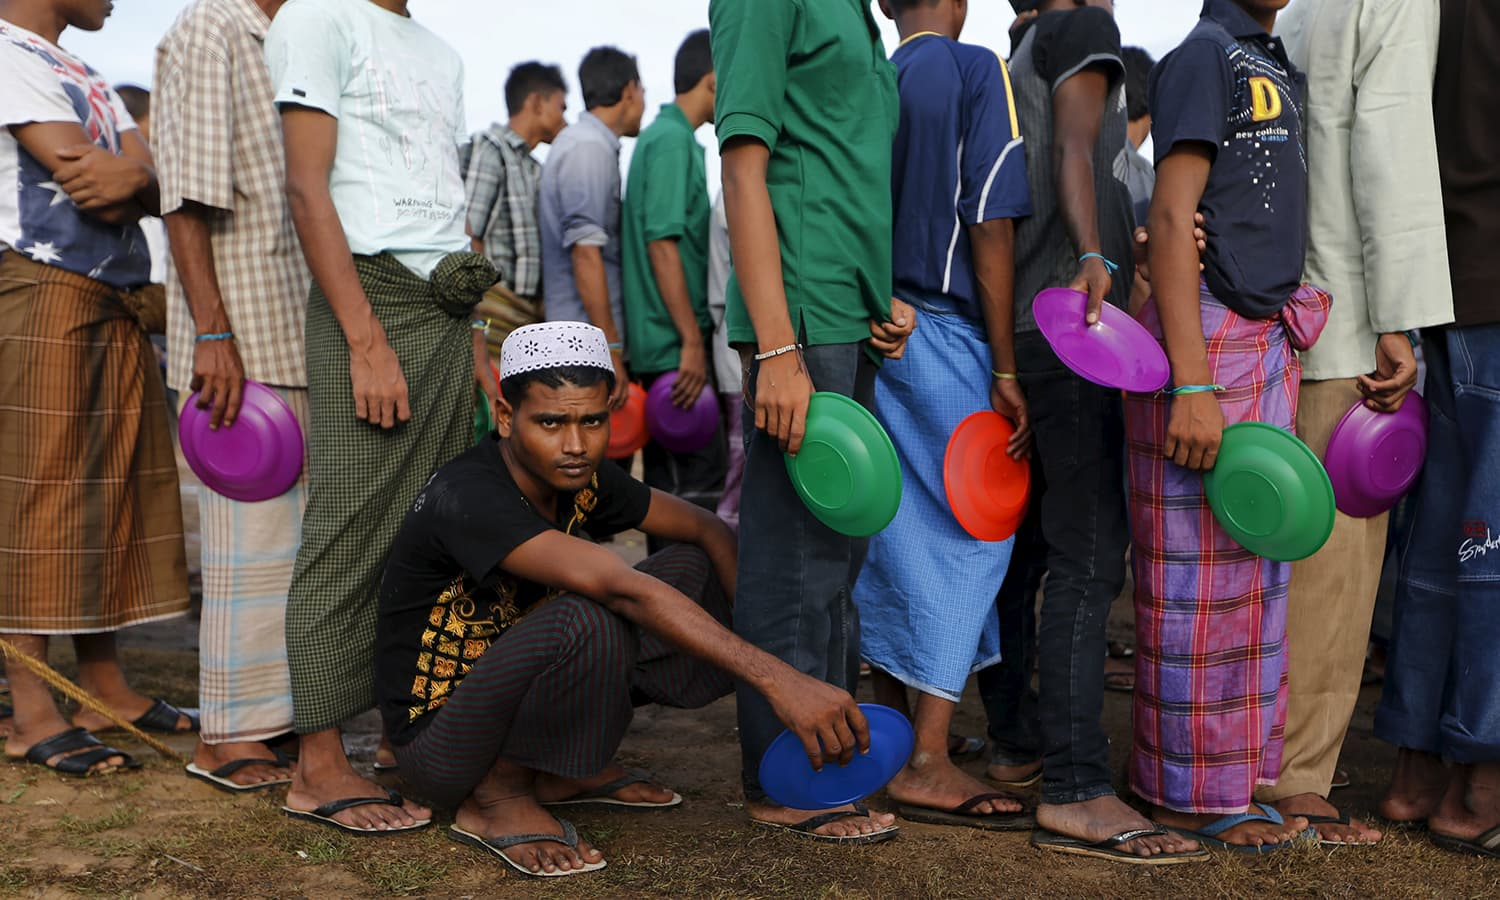 Rohingya migrants who arrived in Indonesia by boat queue for breakfast inside a temporary compound for refugee at Kuala Cangkoi village in Lhoksukon, Indonesia's Aceh.